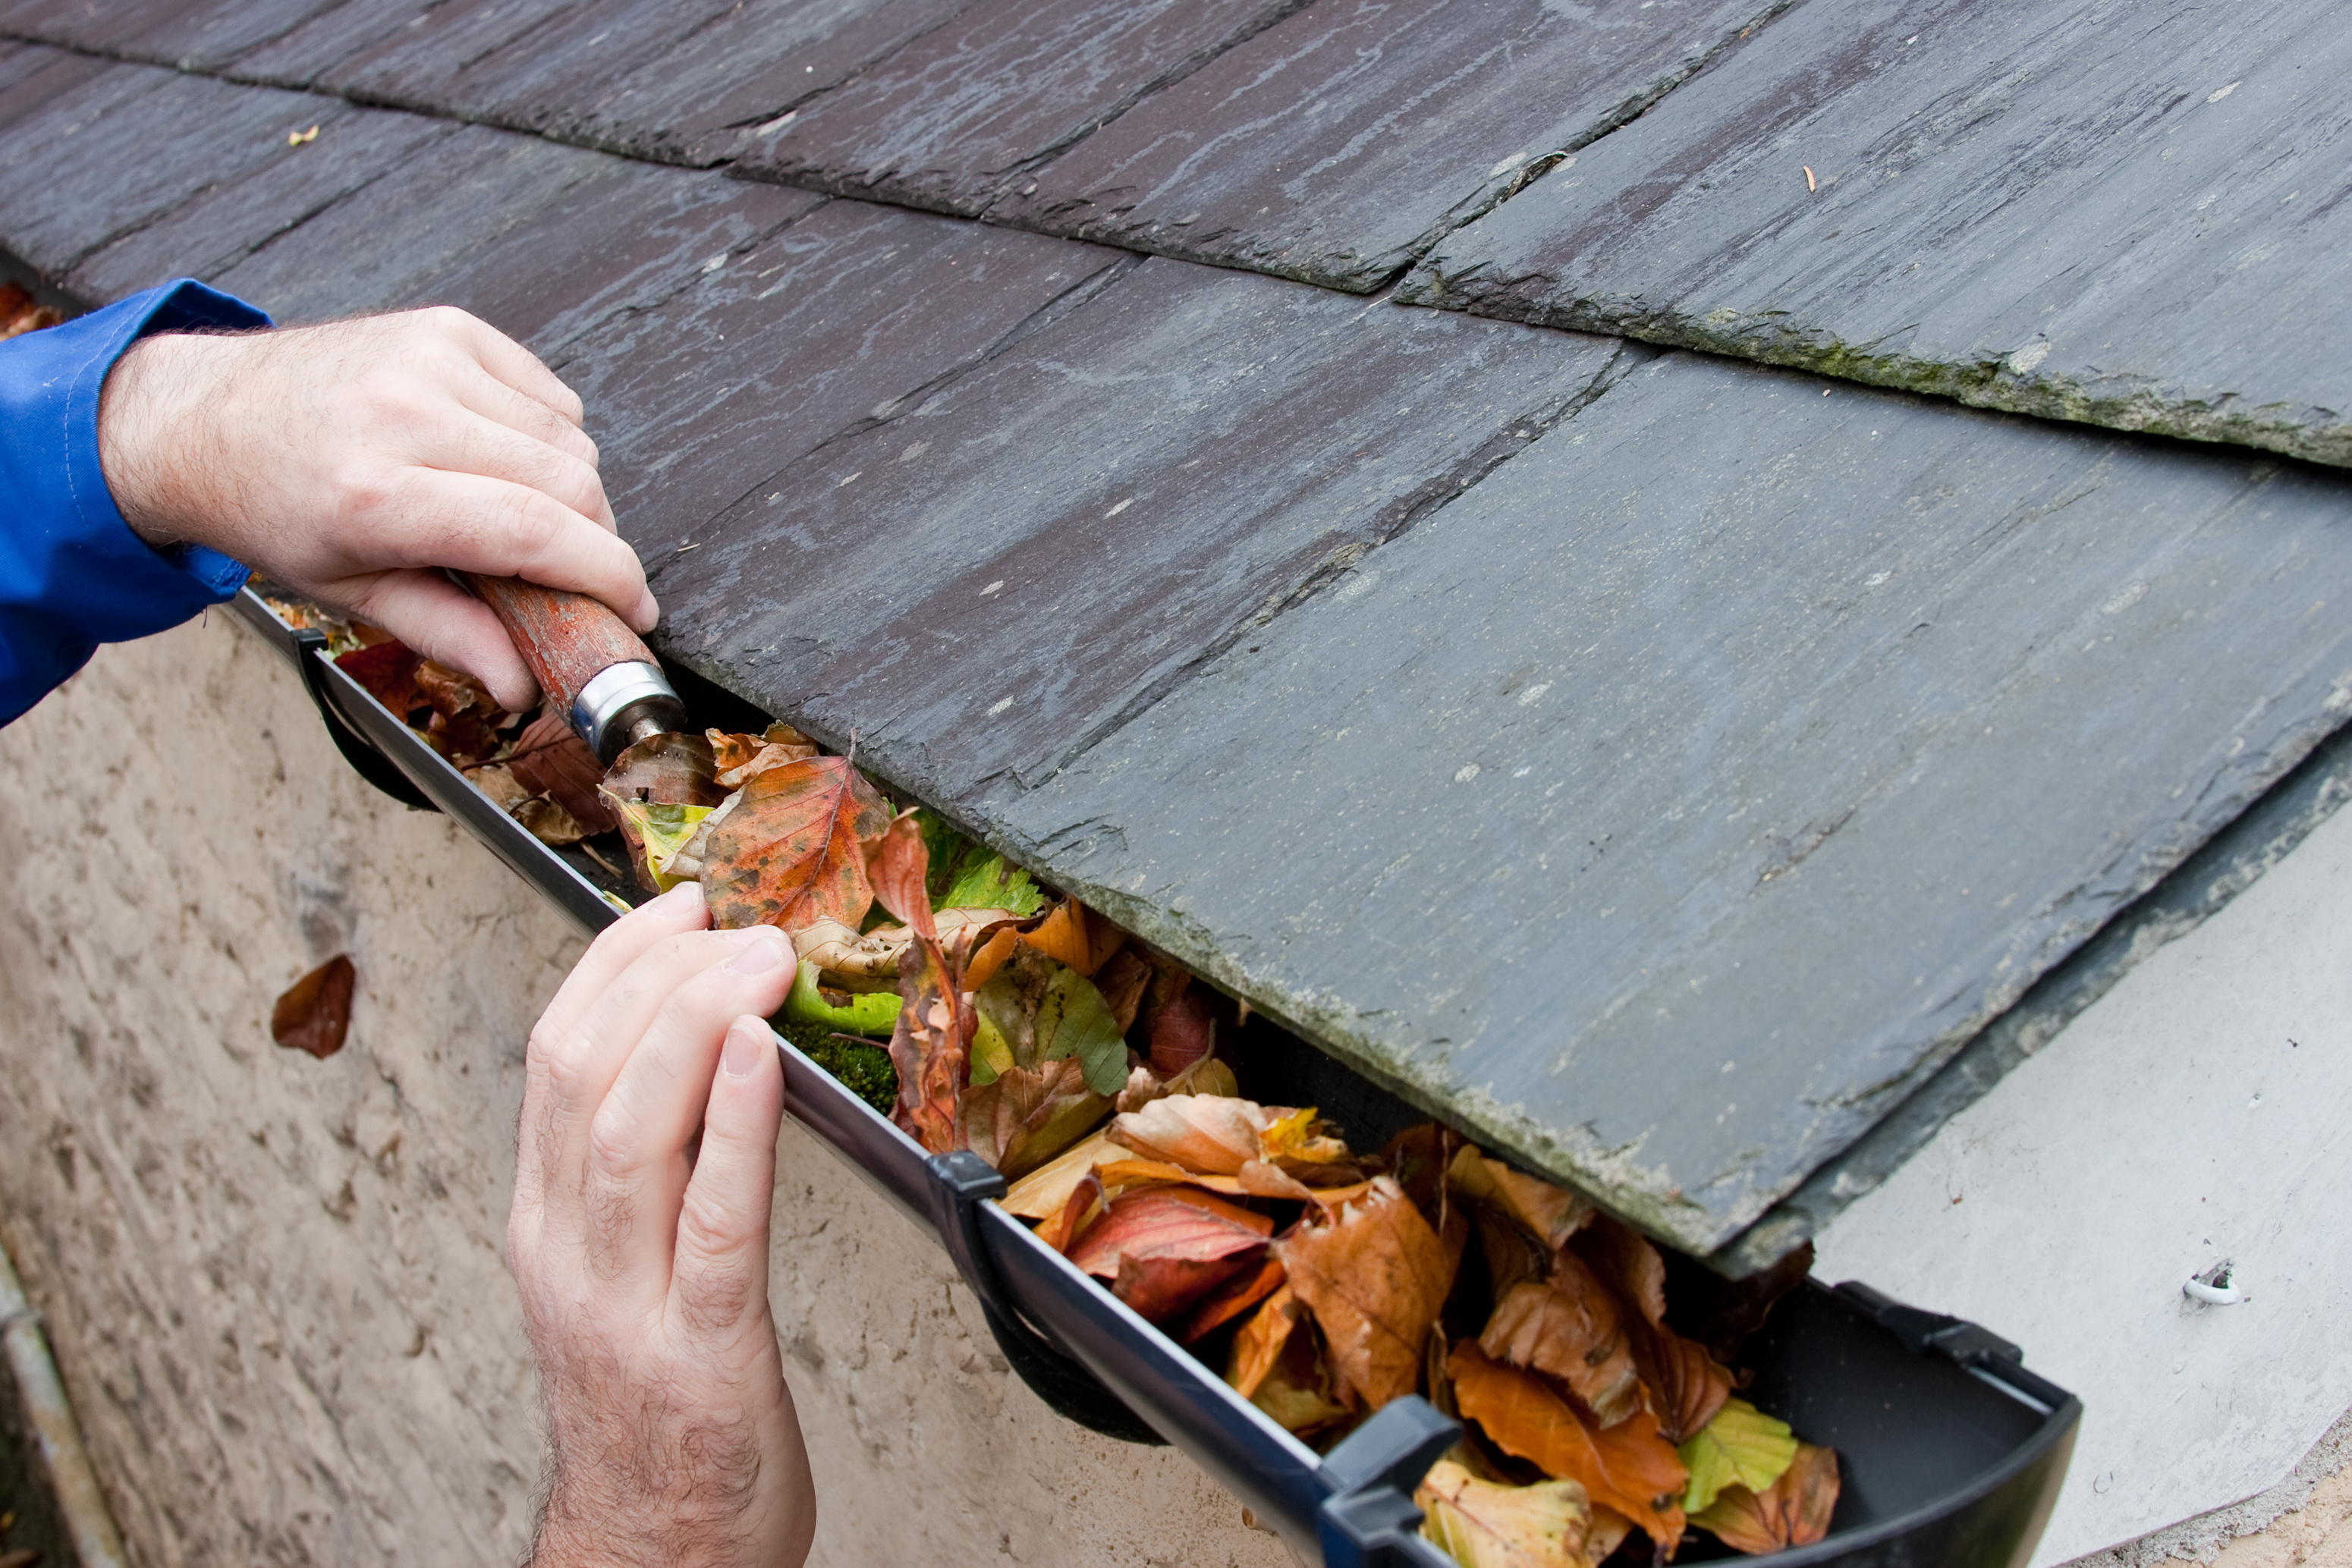 professional gutter cleaning in minneapolis